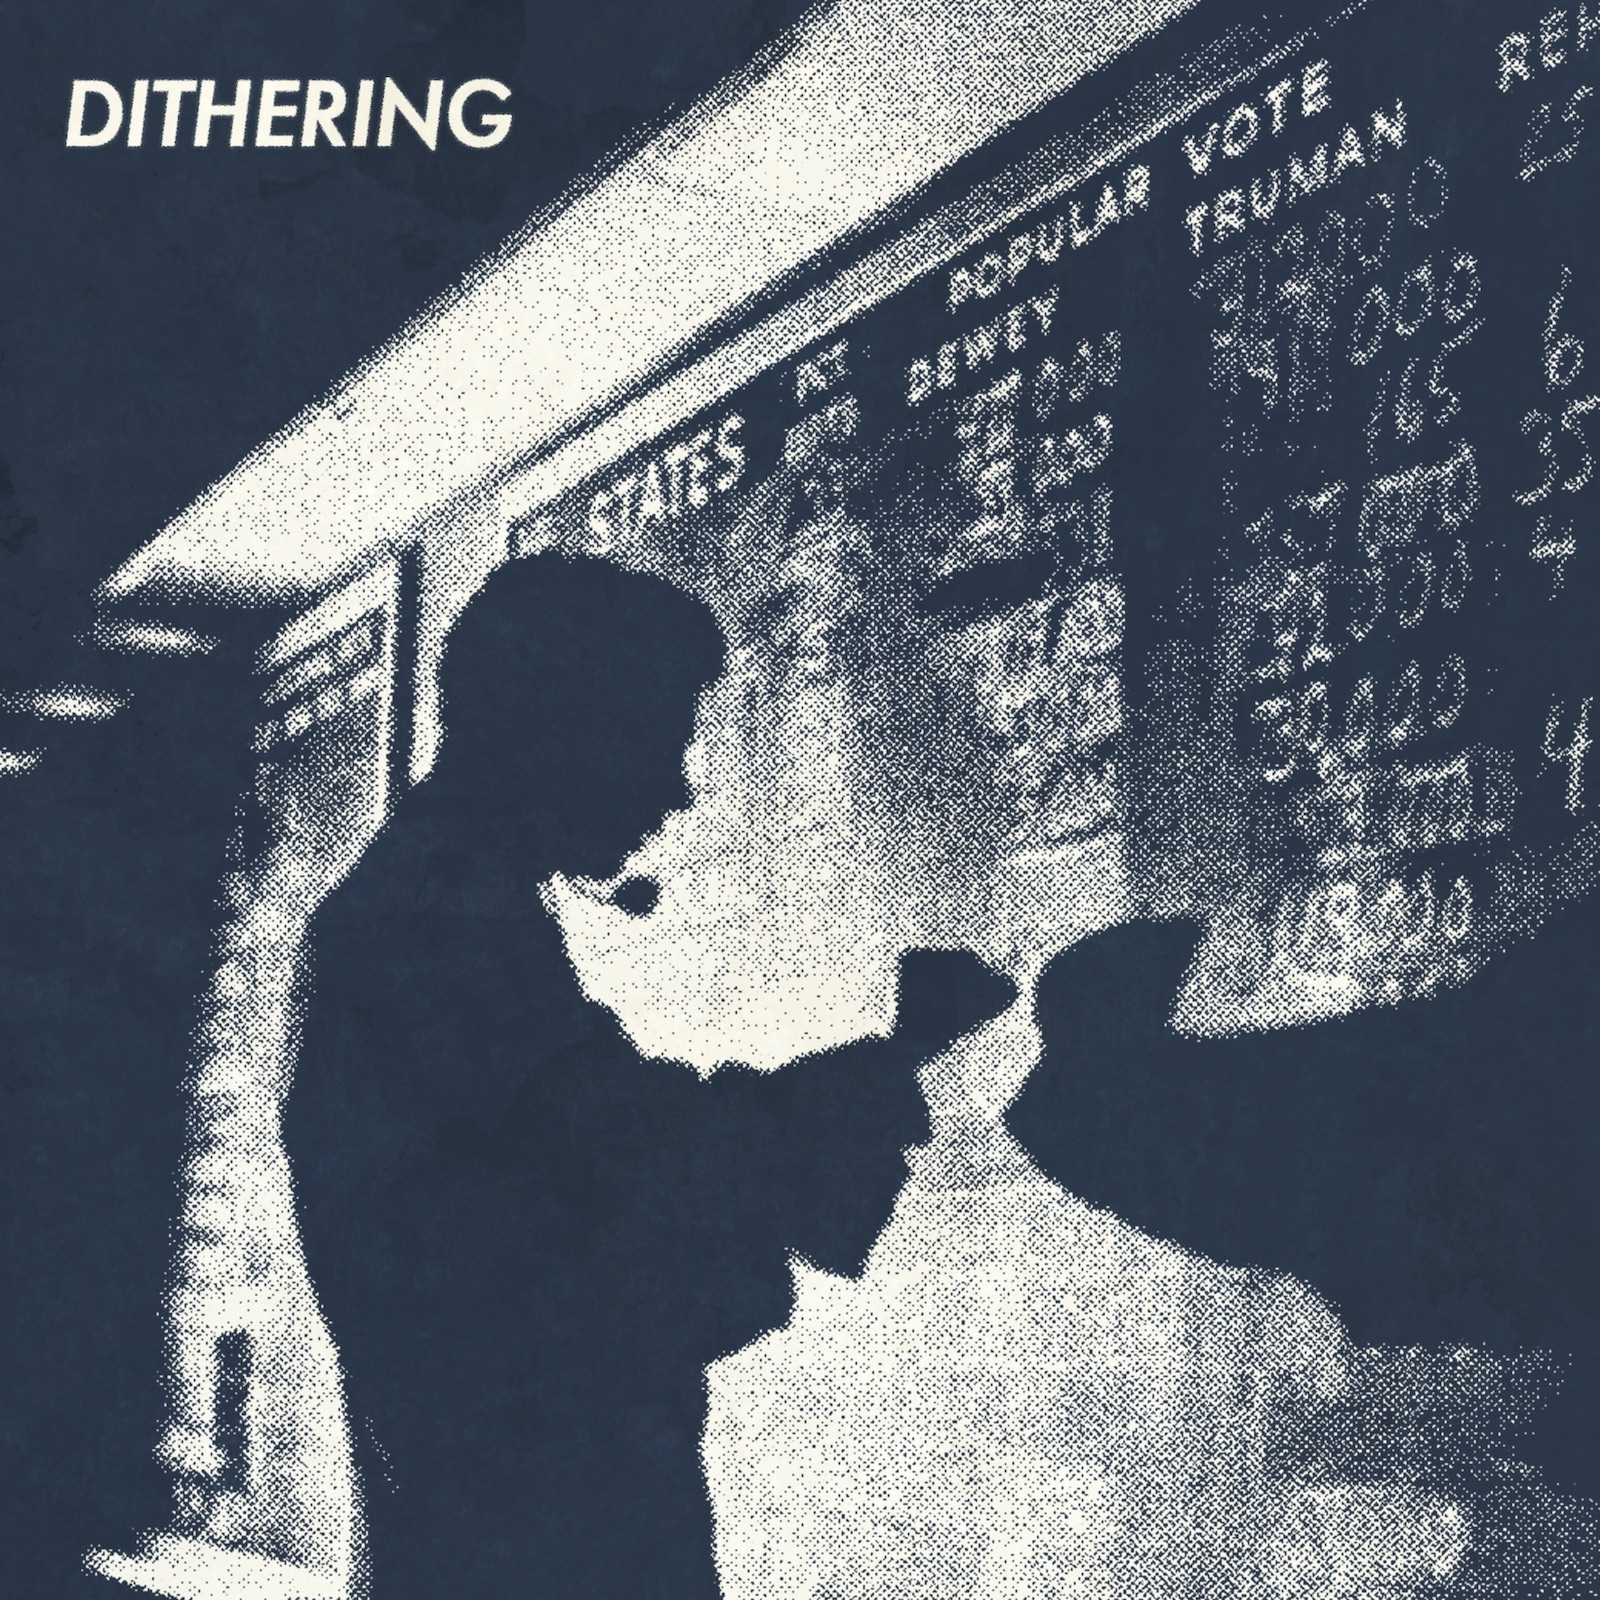 Dithering October 2020